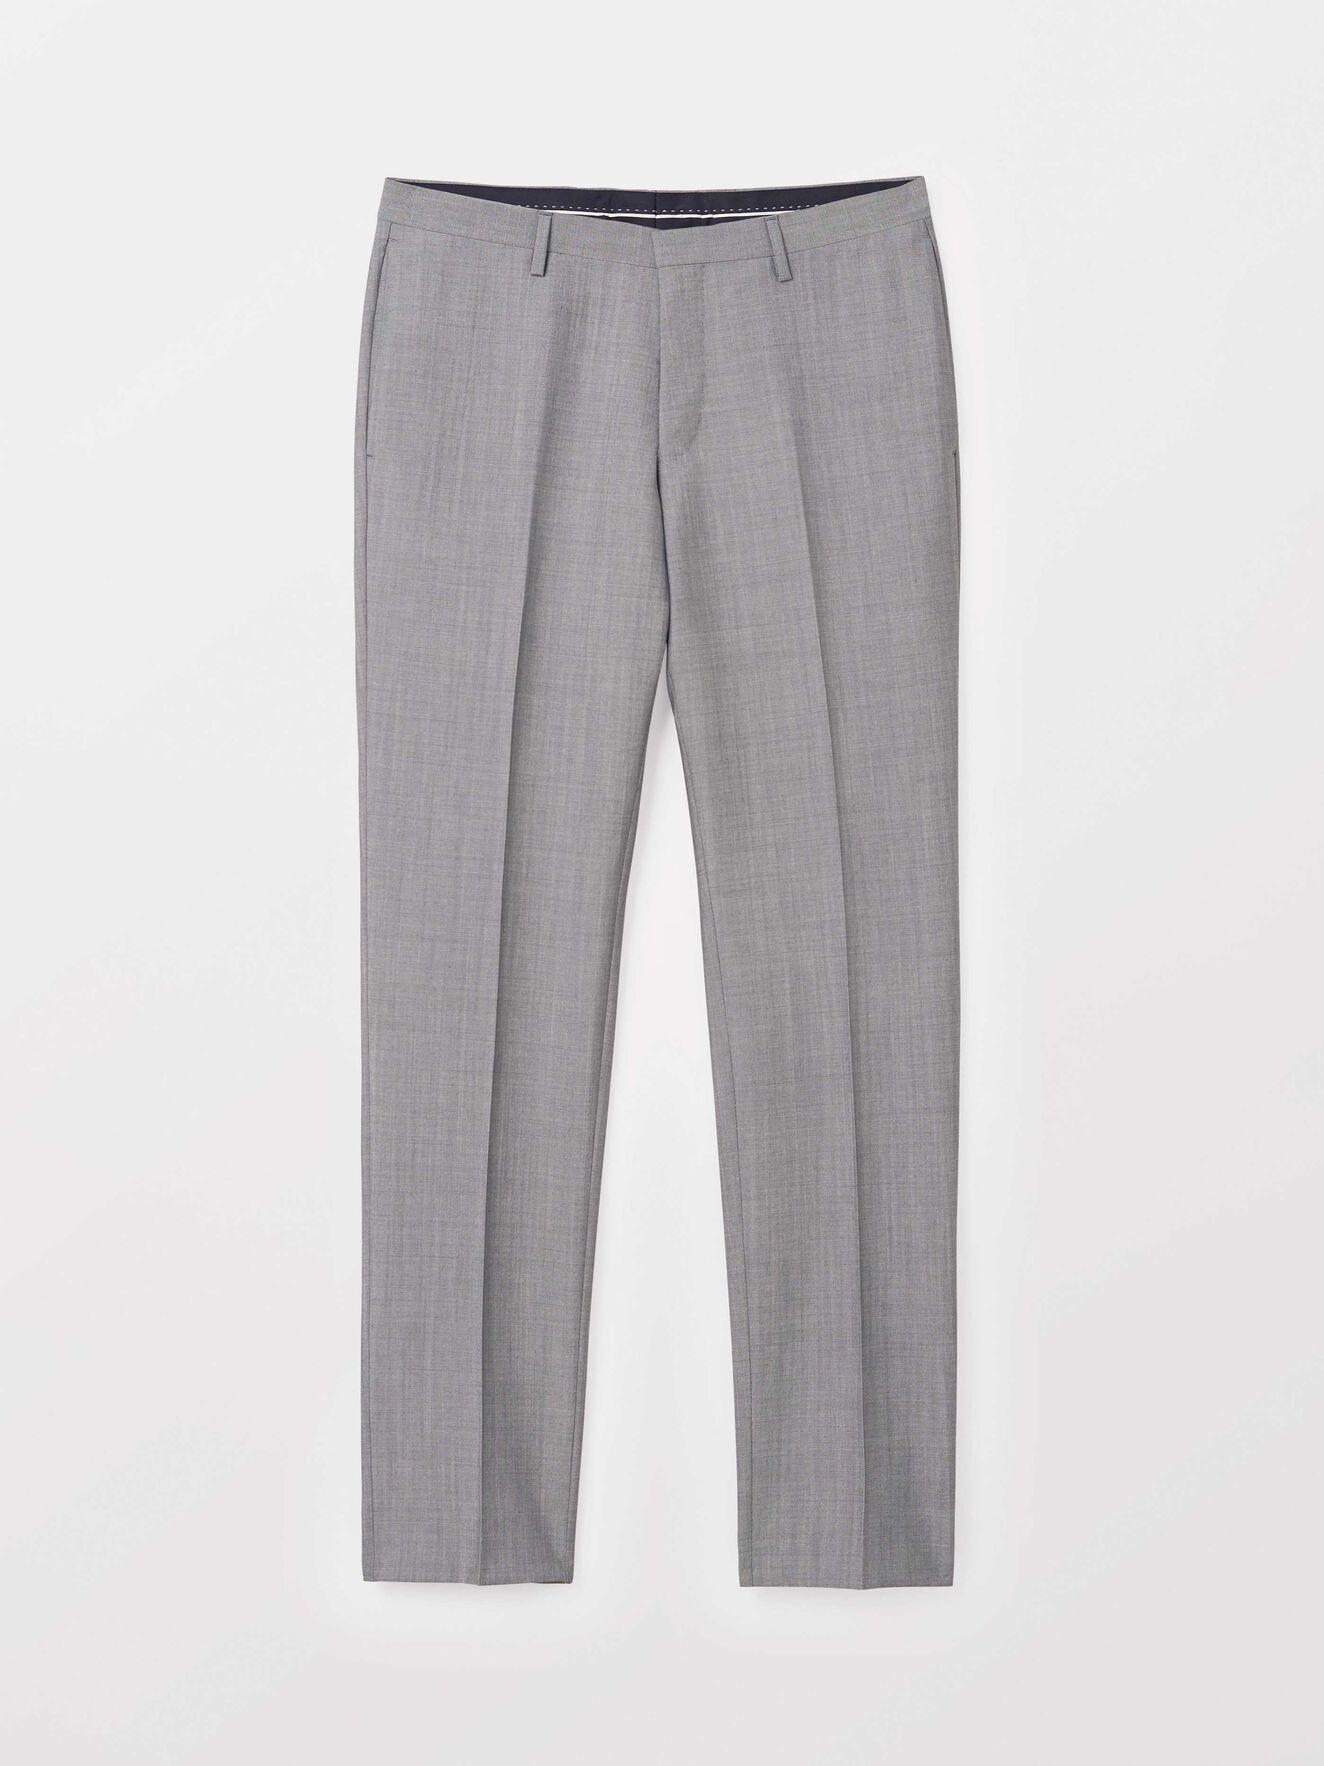 Todd Trousers in Light grey melange from Tiger of Sweden